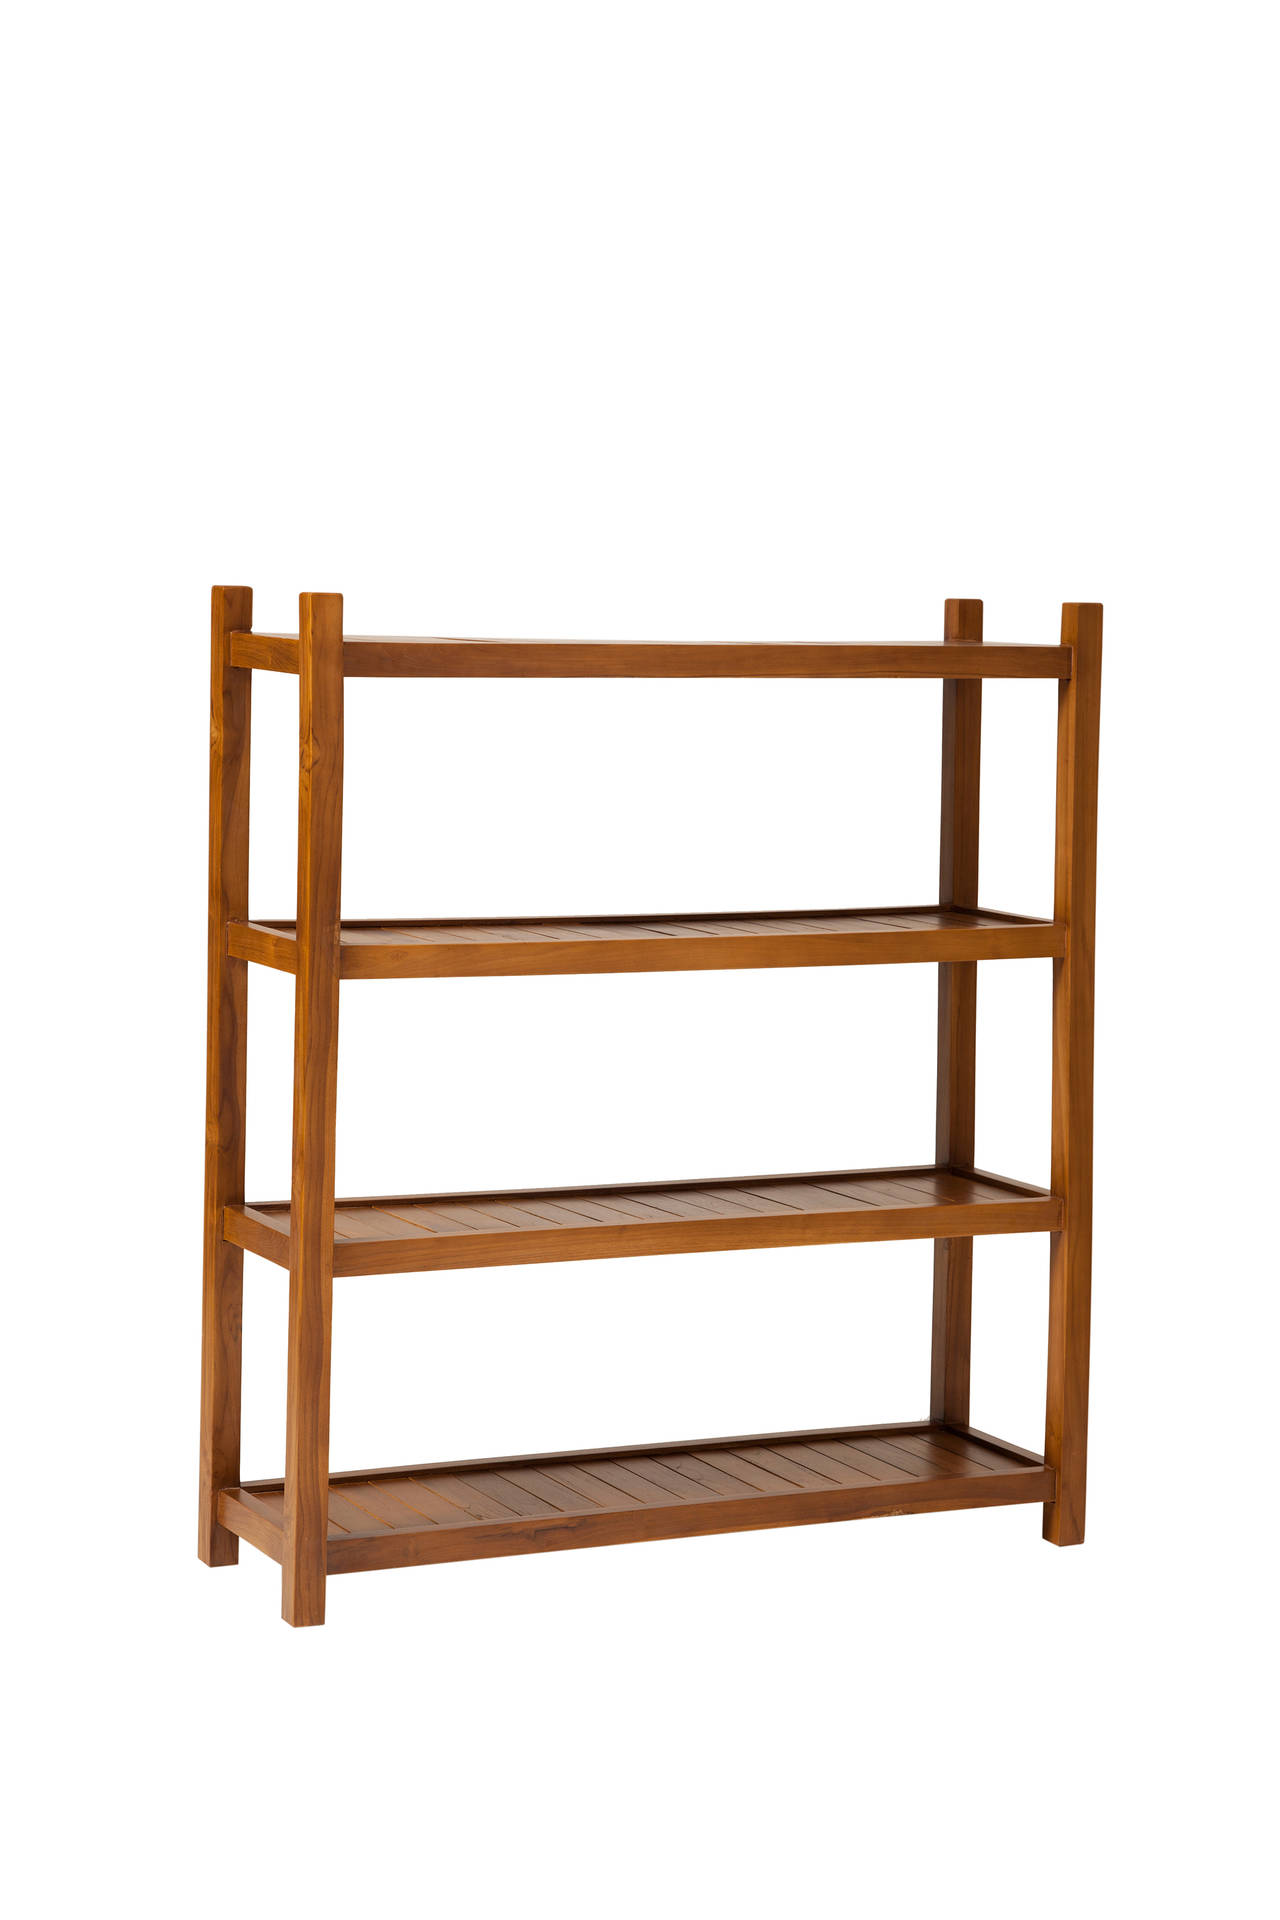 SHOE RACK 4 shelves